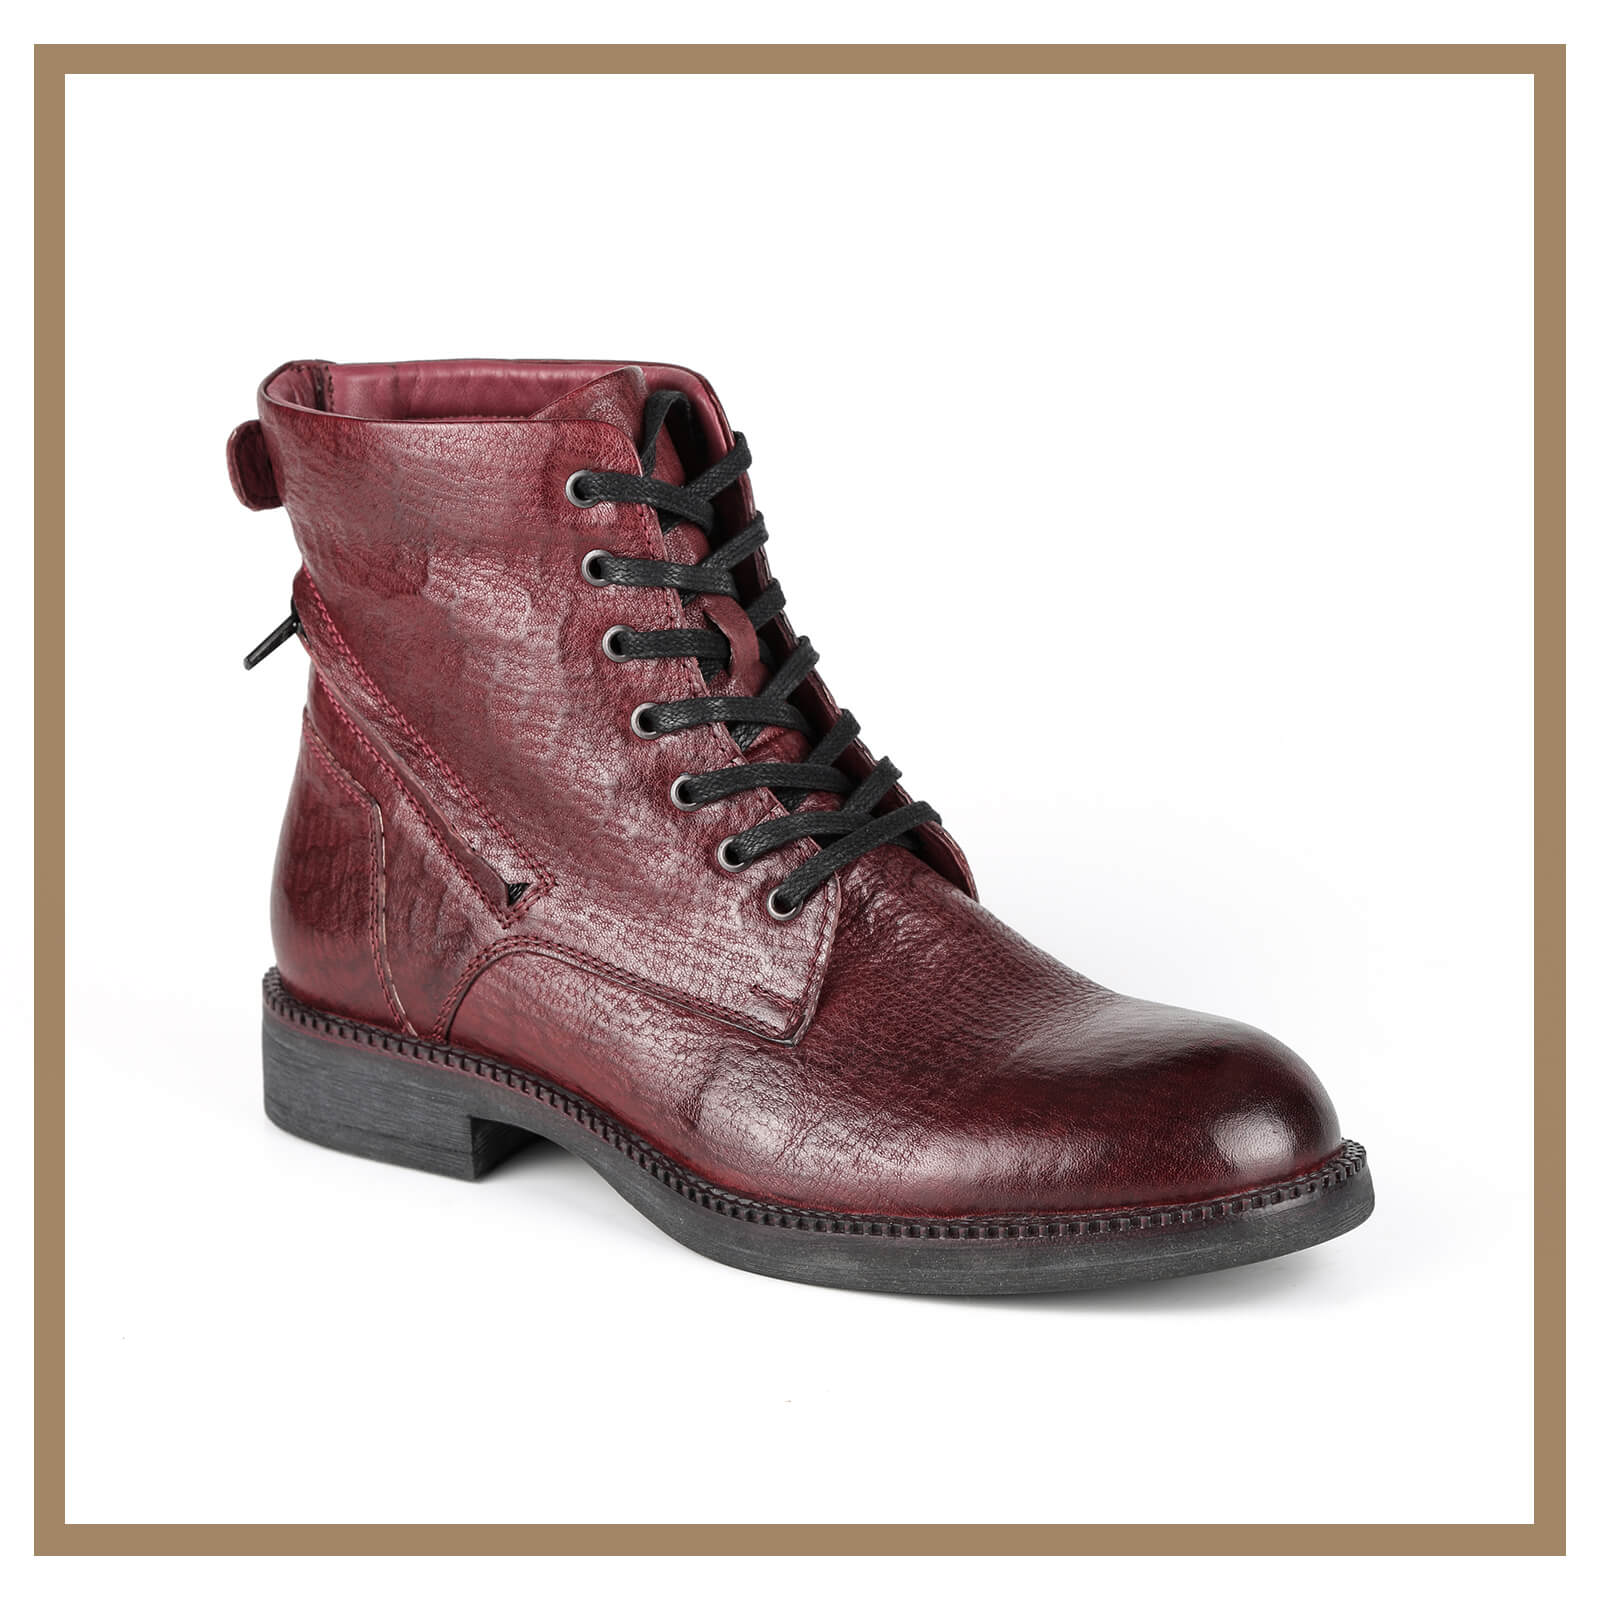 Leather Man Boots 003